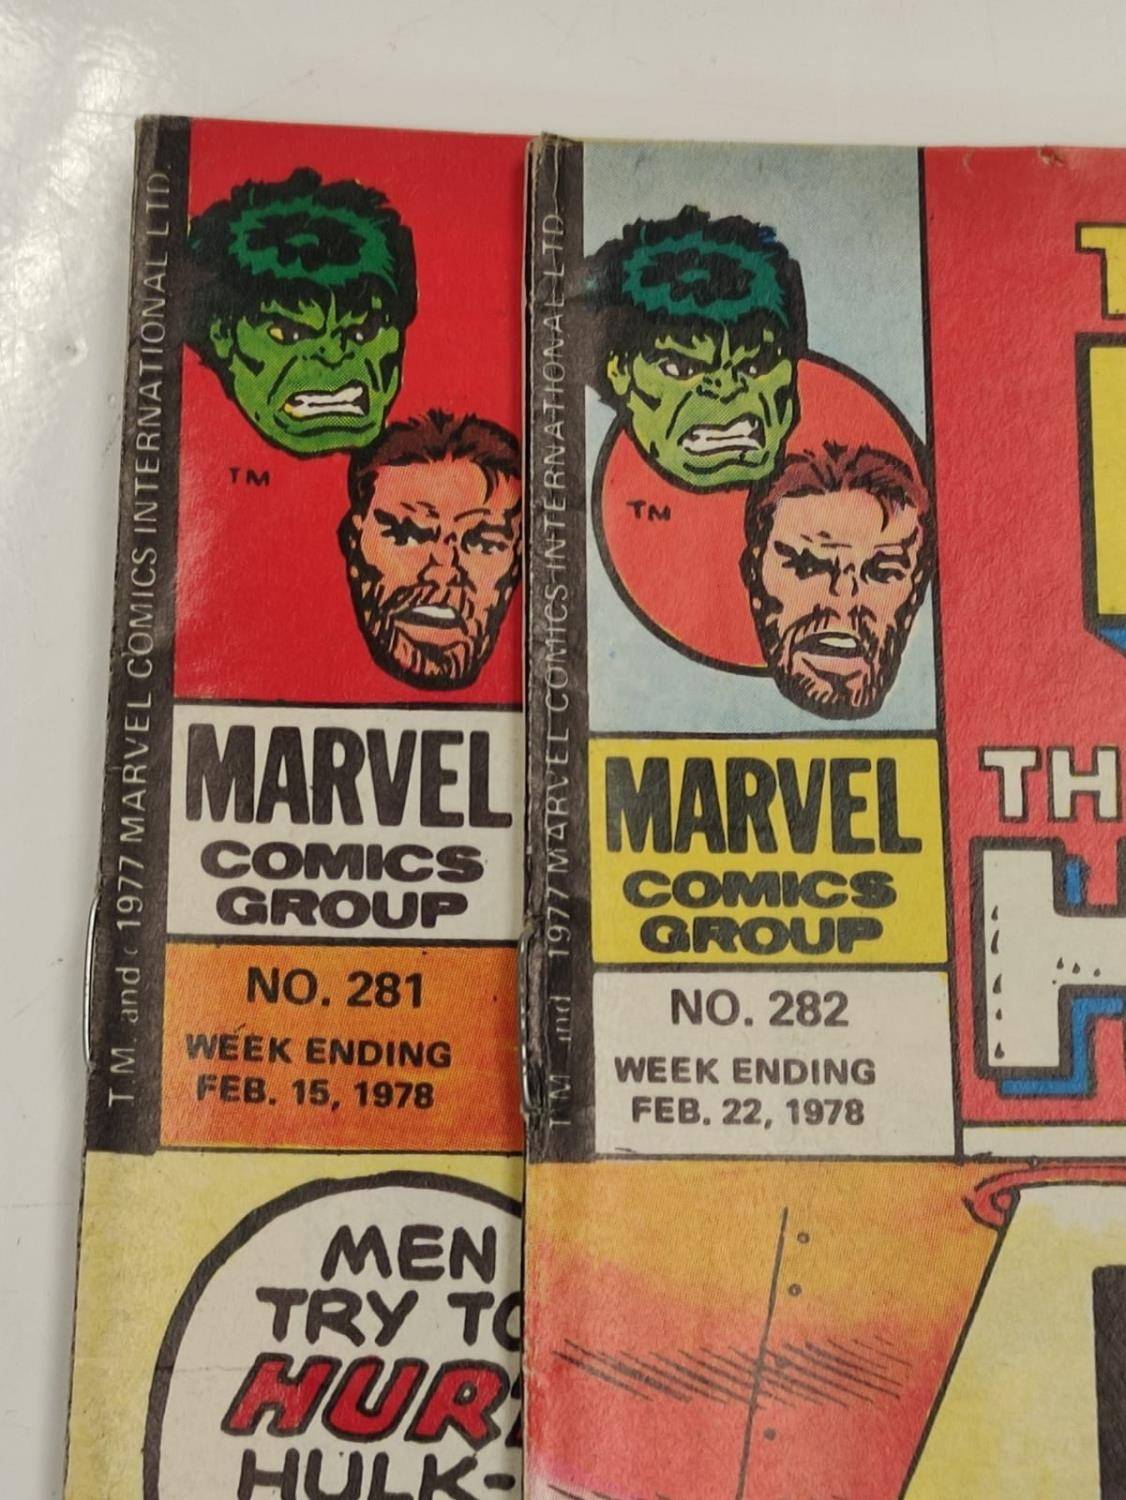 5 editions of Special Vintage Marvel Comics including 'The Tomb of Dracula'. - Image 13 of 15